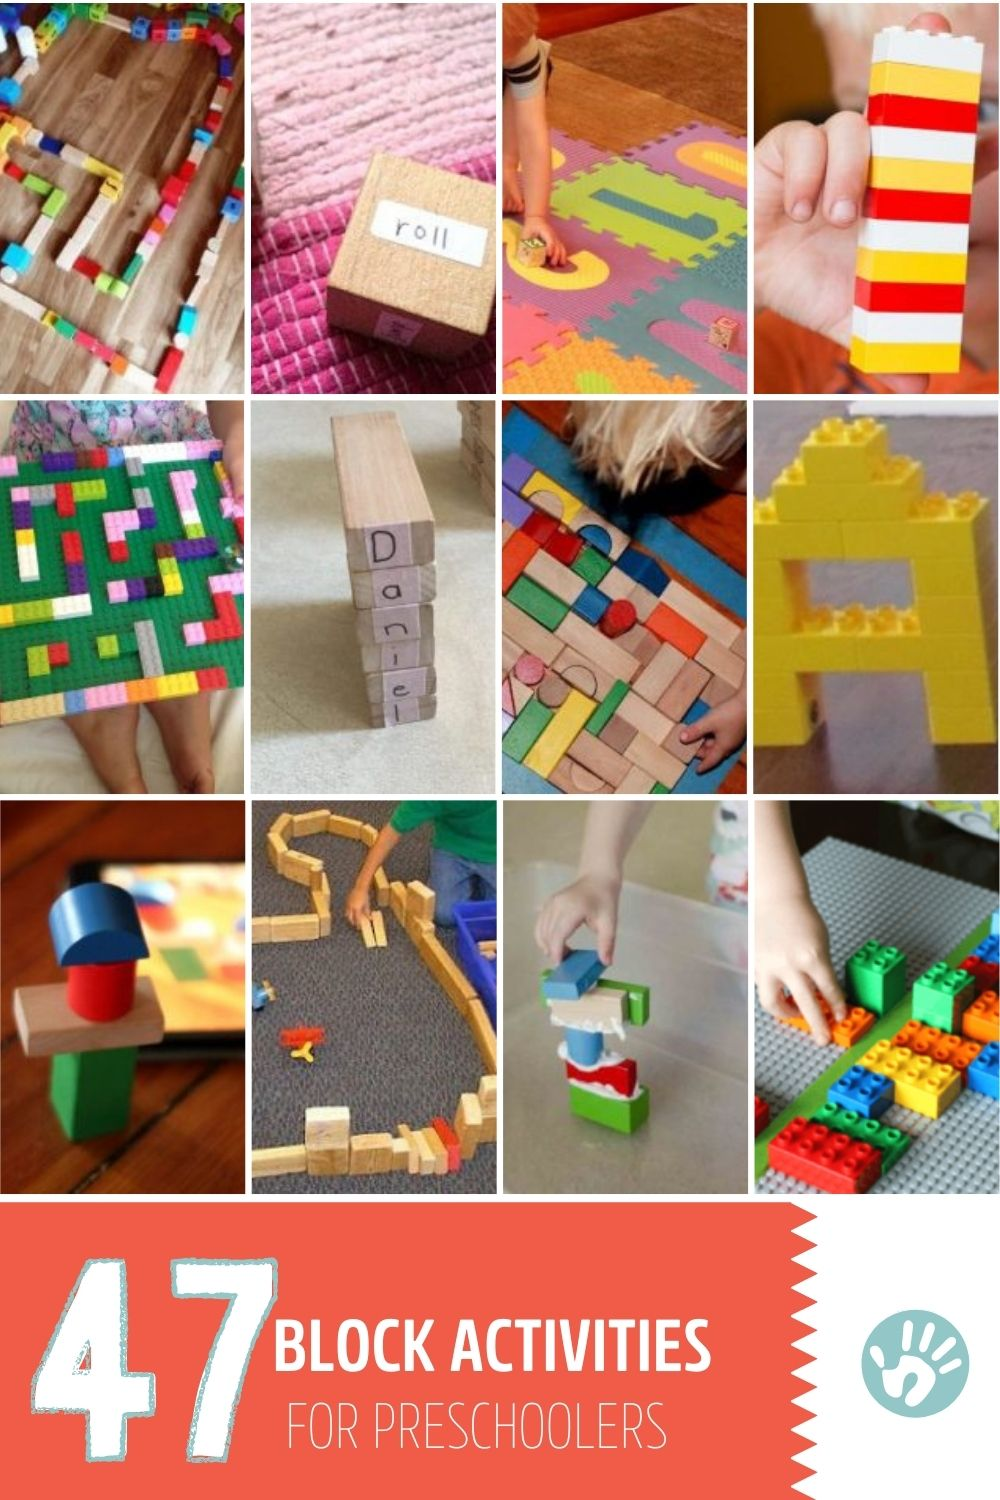 Lots of block activities for preschoolers and even toddlers using common blocks that are found in most homes - wooden blocks, Legos, and ABC blocks.